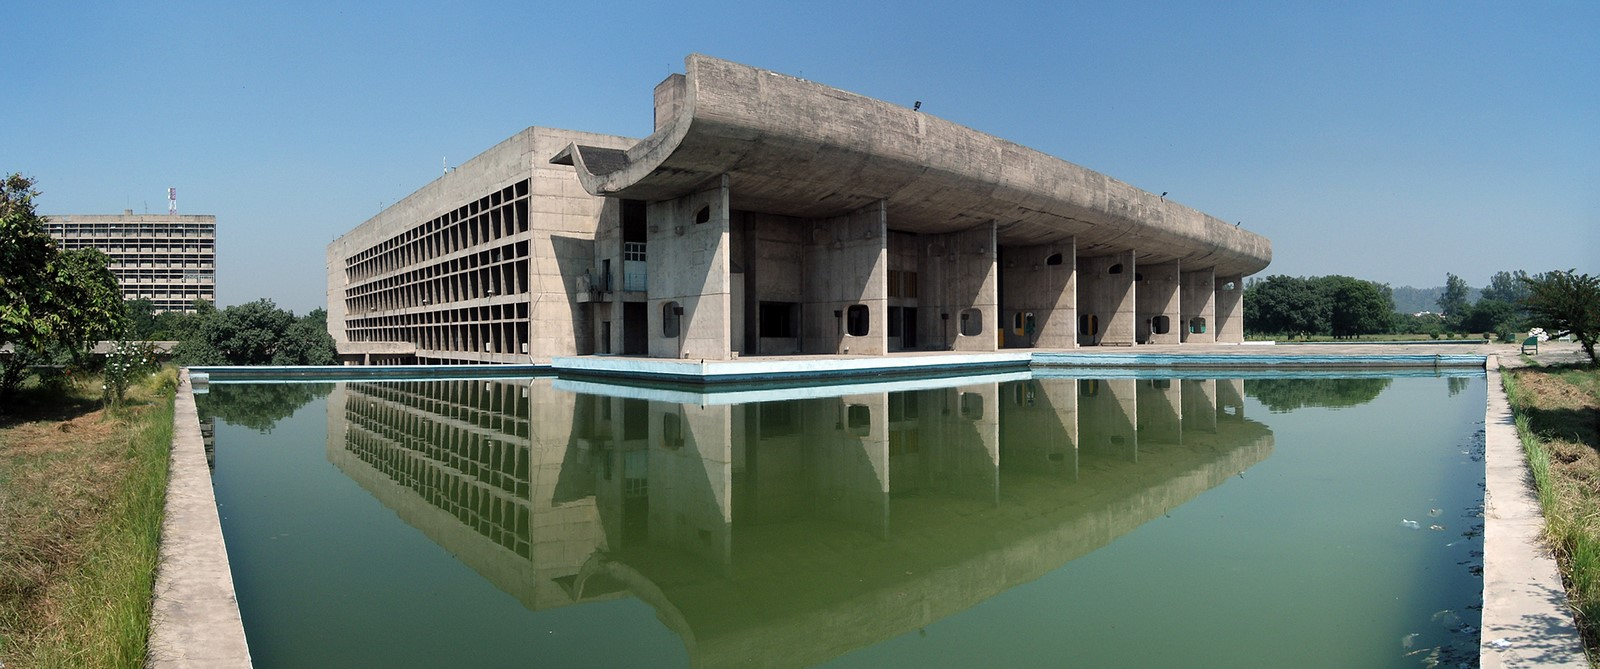 Why Kala Academy by Charles Correa should be considered as architectural heritage - Sheet2